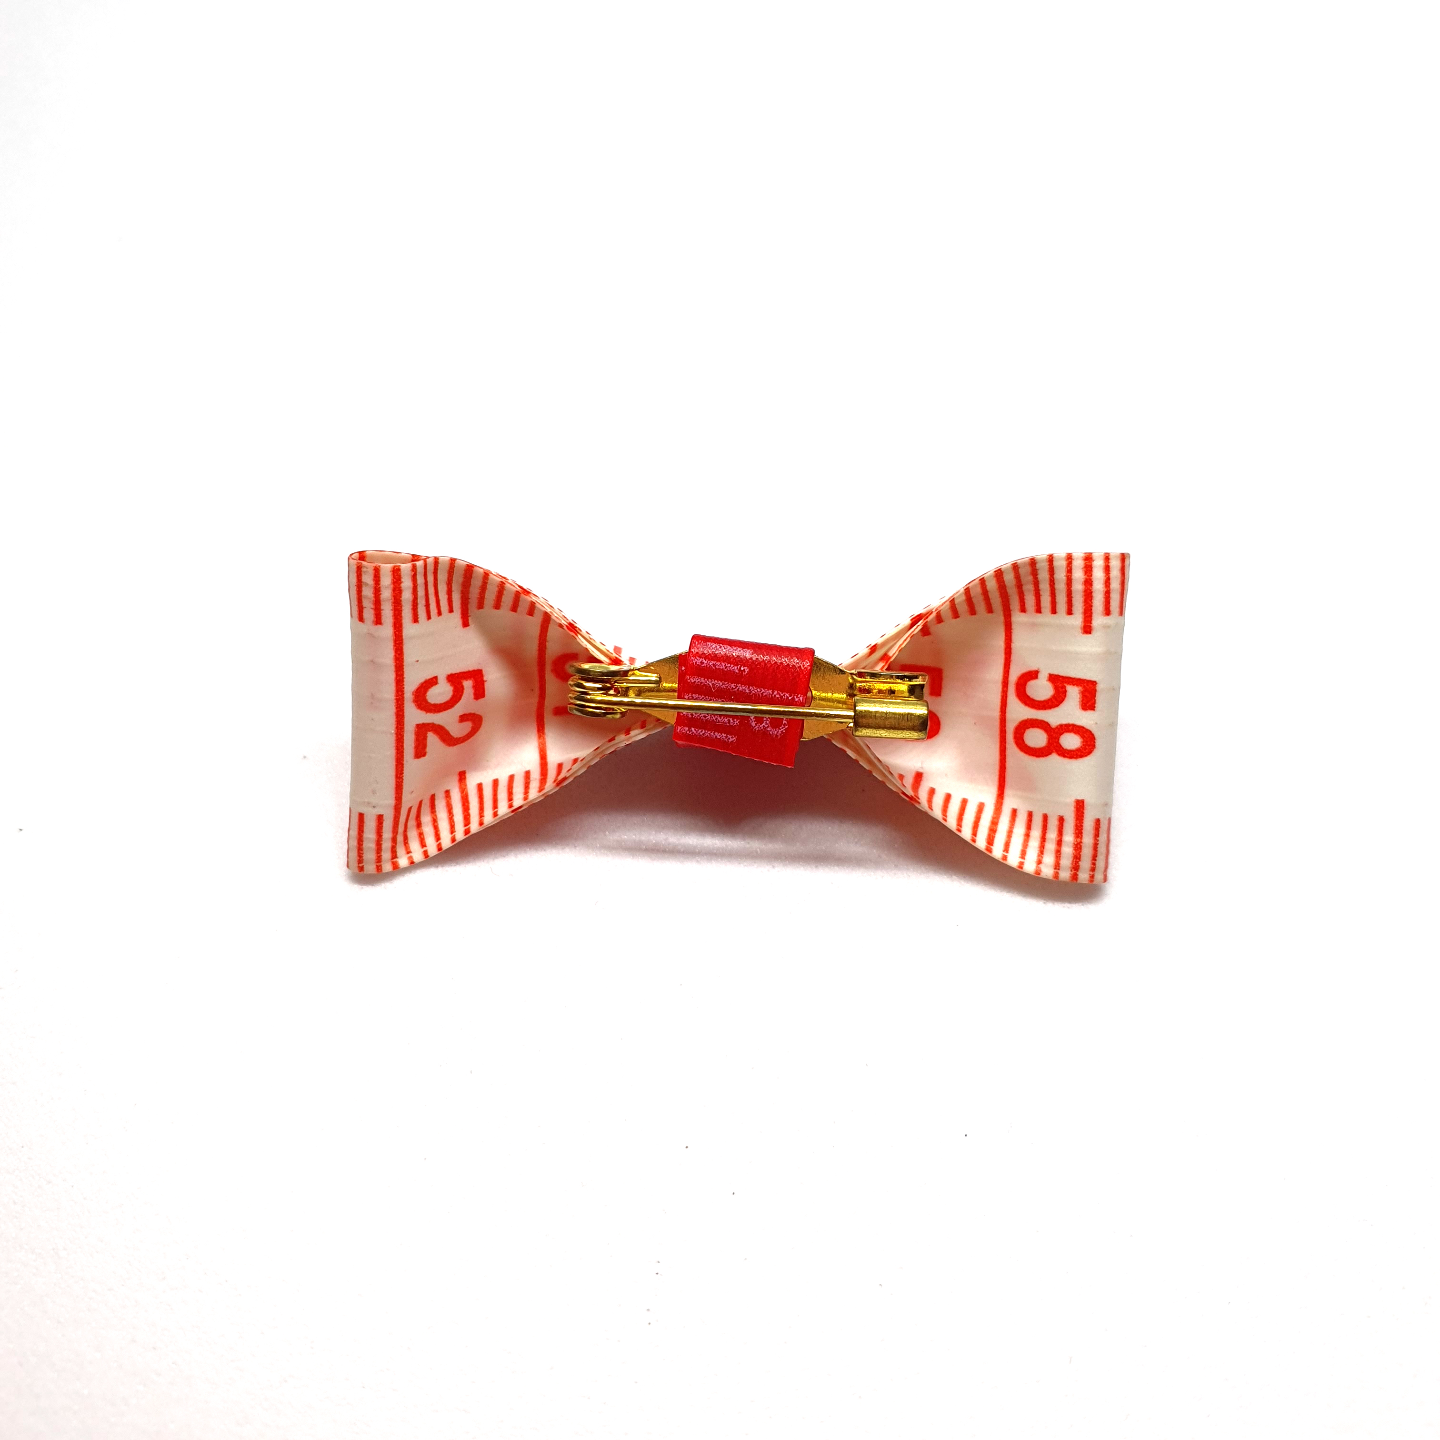 Handmade Accessories Measuring Tape Ribbon Brooches Red 1 by Doe & Audrey